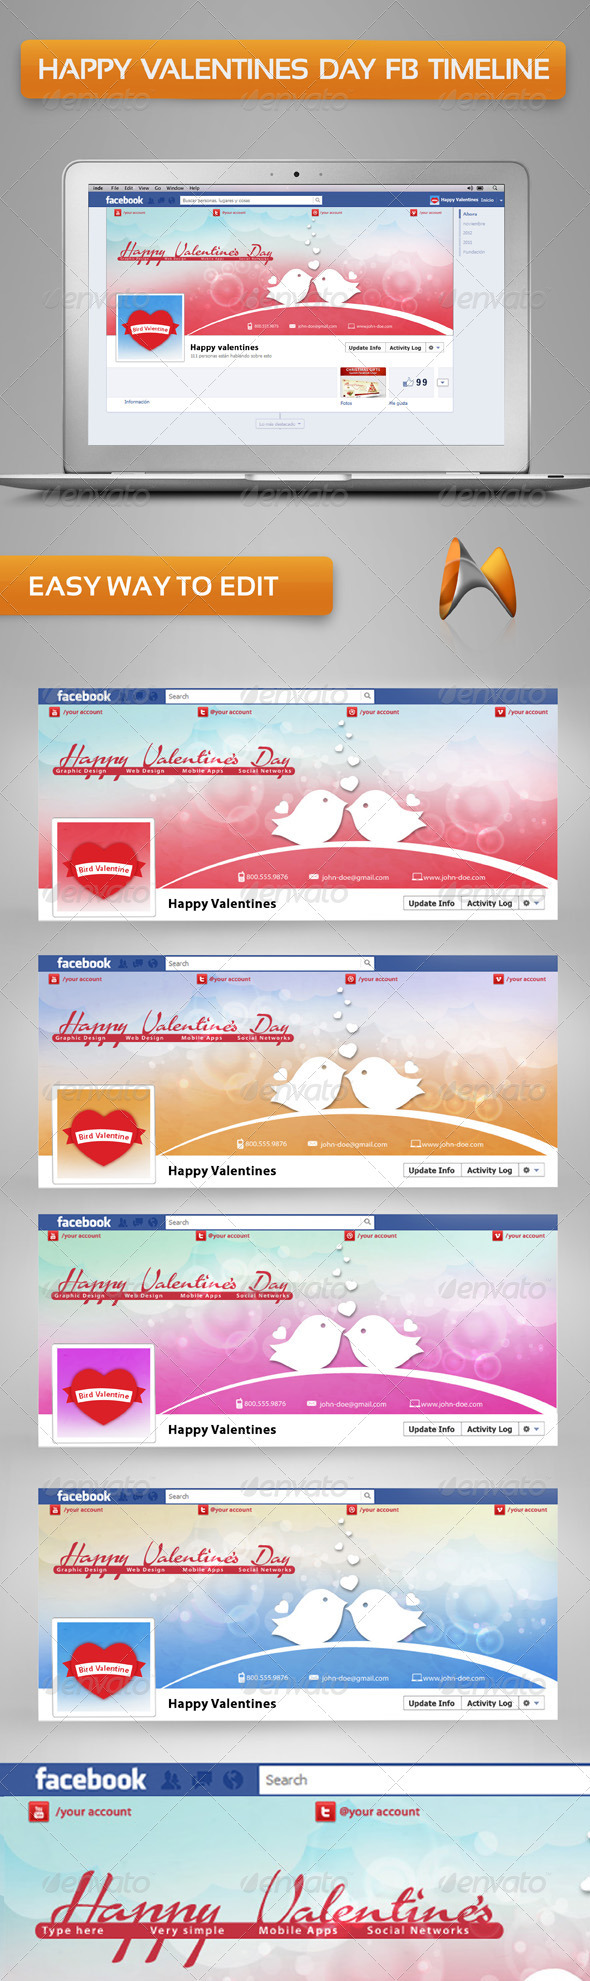 GraphicRiver Happy Valentine s Day Timeline Cover 3740358